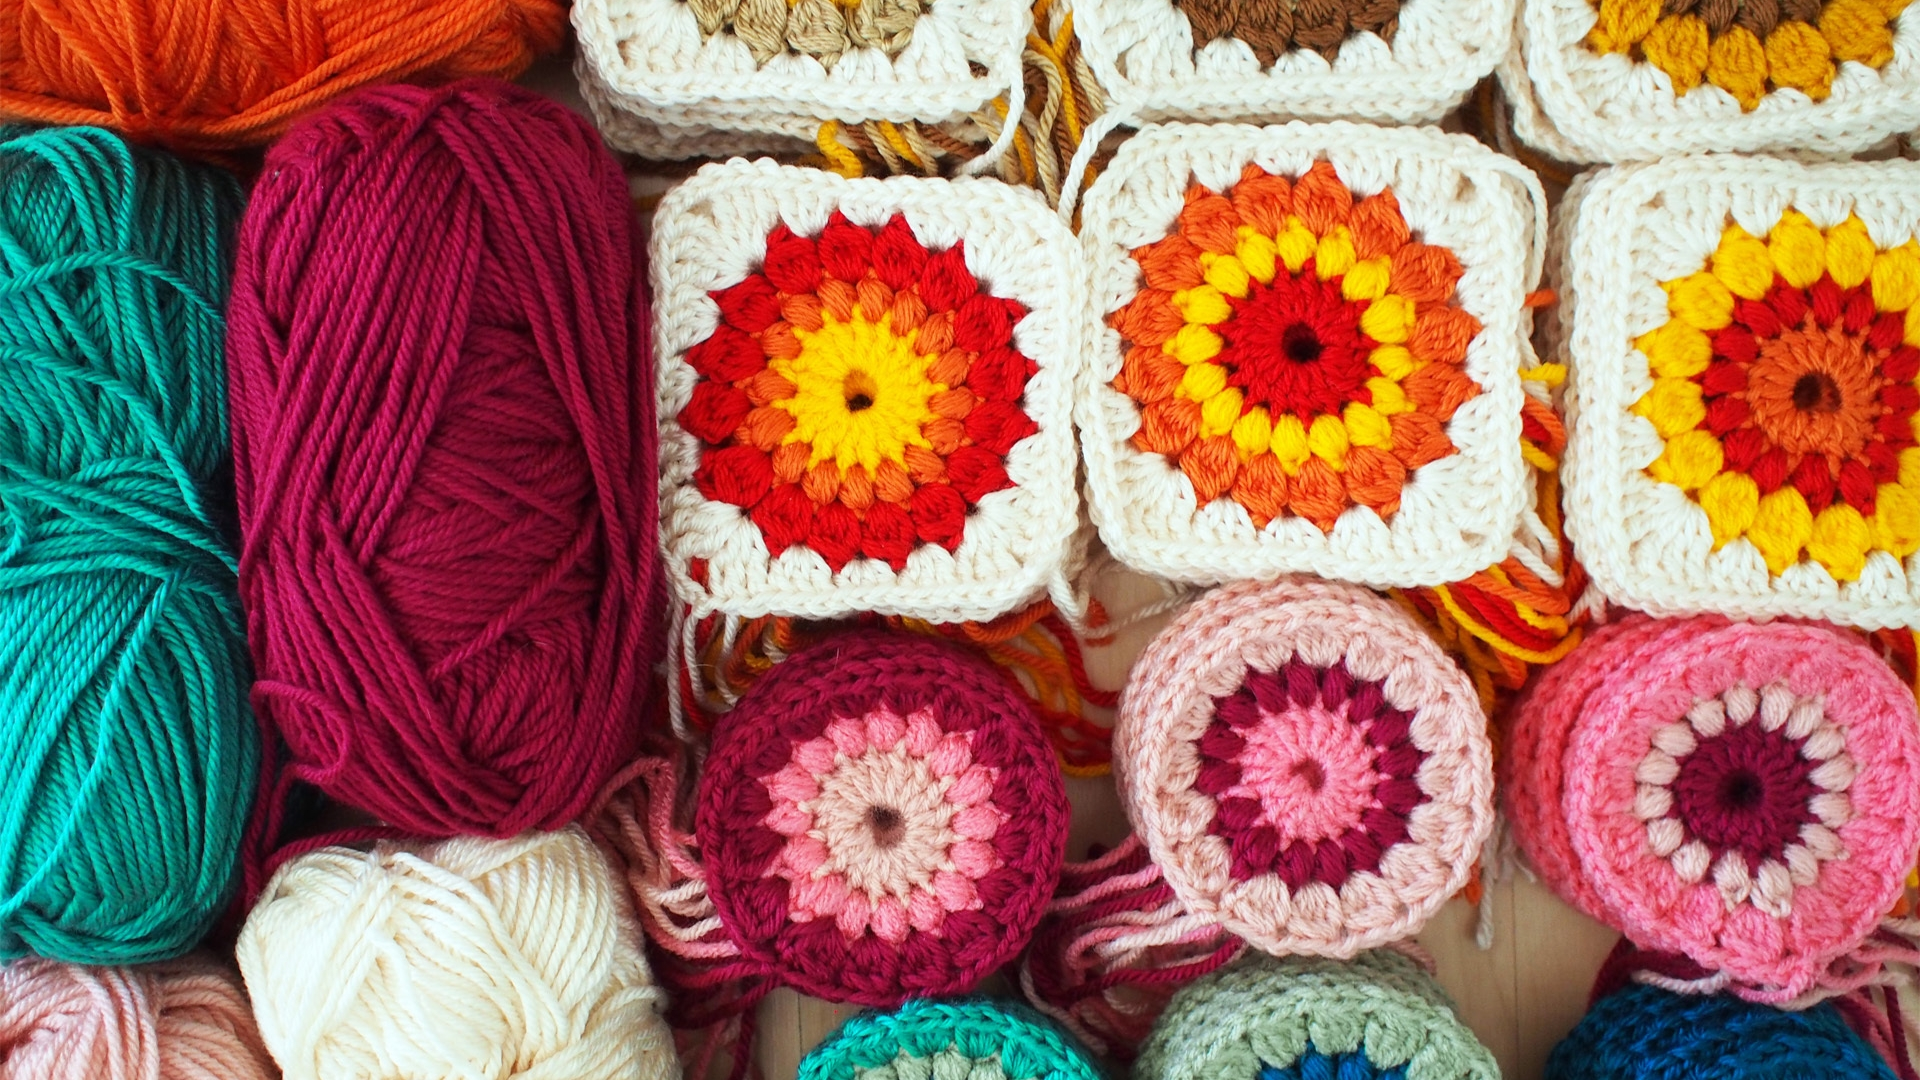 Yarn Wallpaper Posted By Michelle Simpson